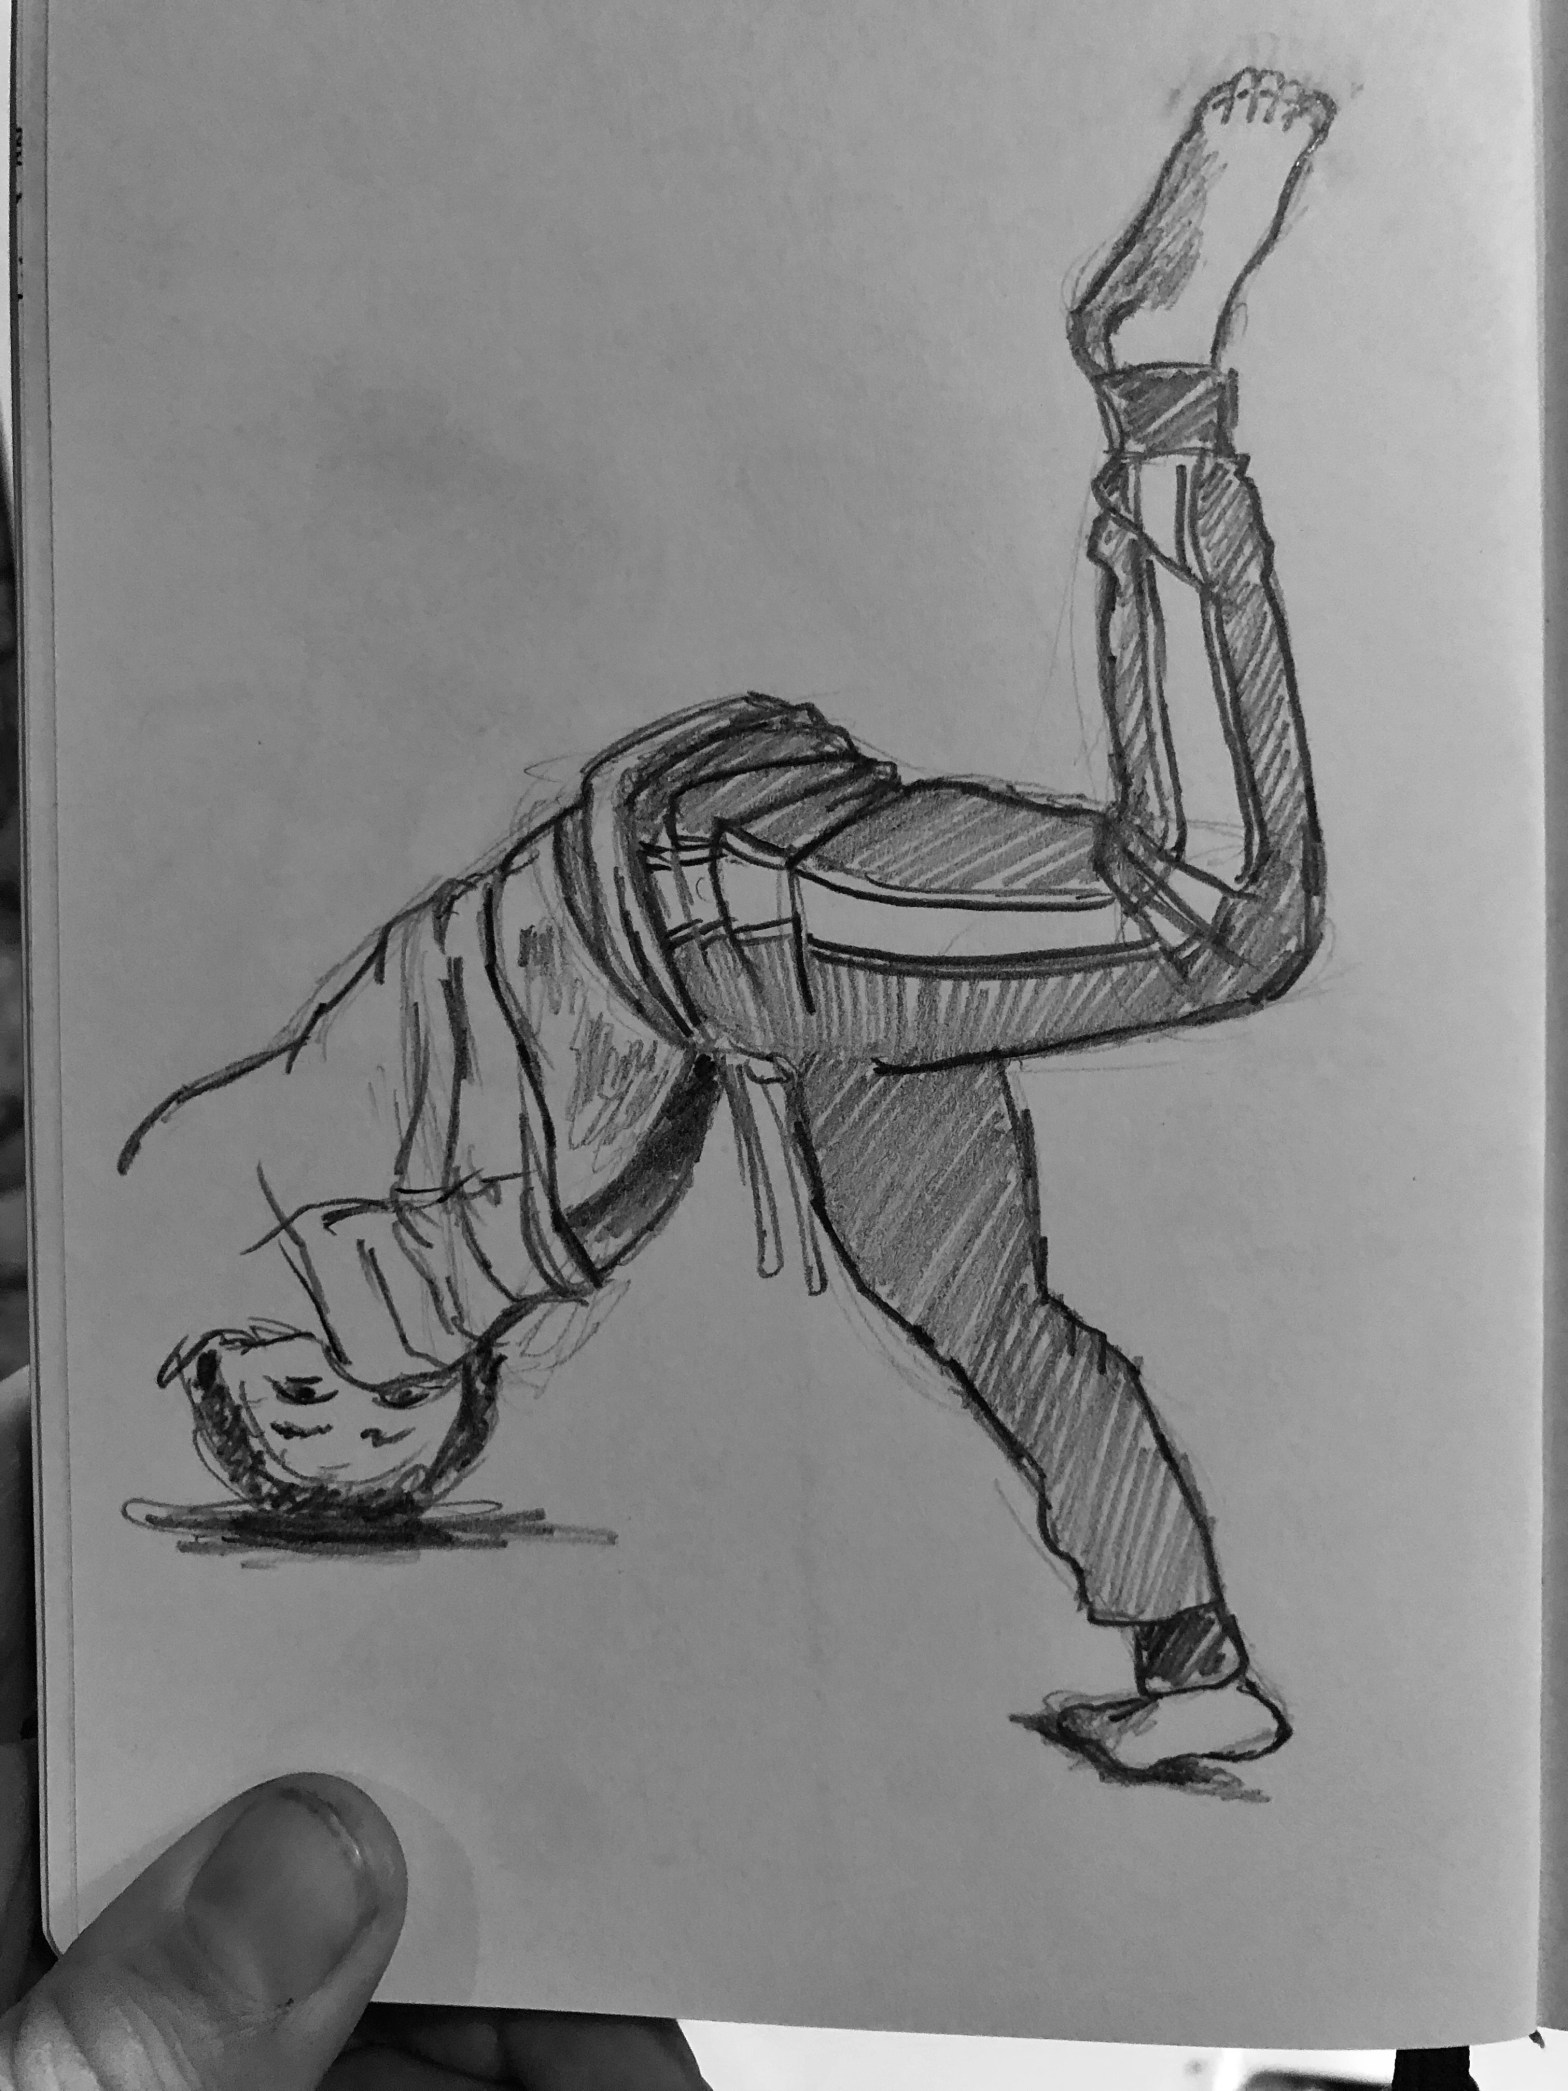 Boy doing a break dance move. Pencil drawing.